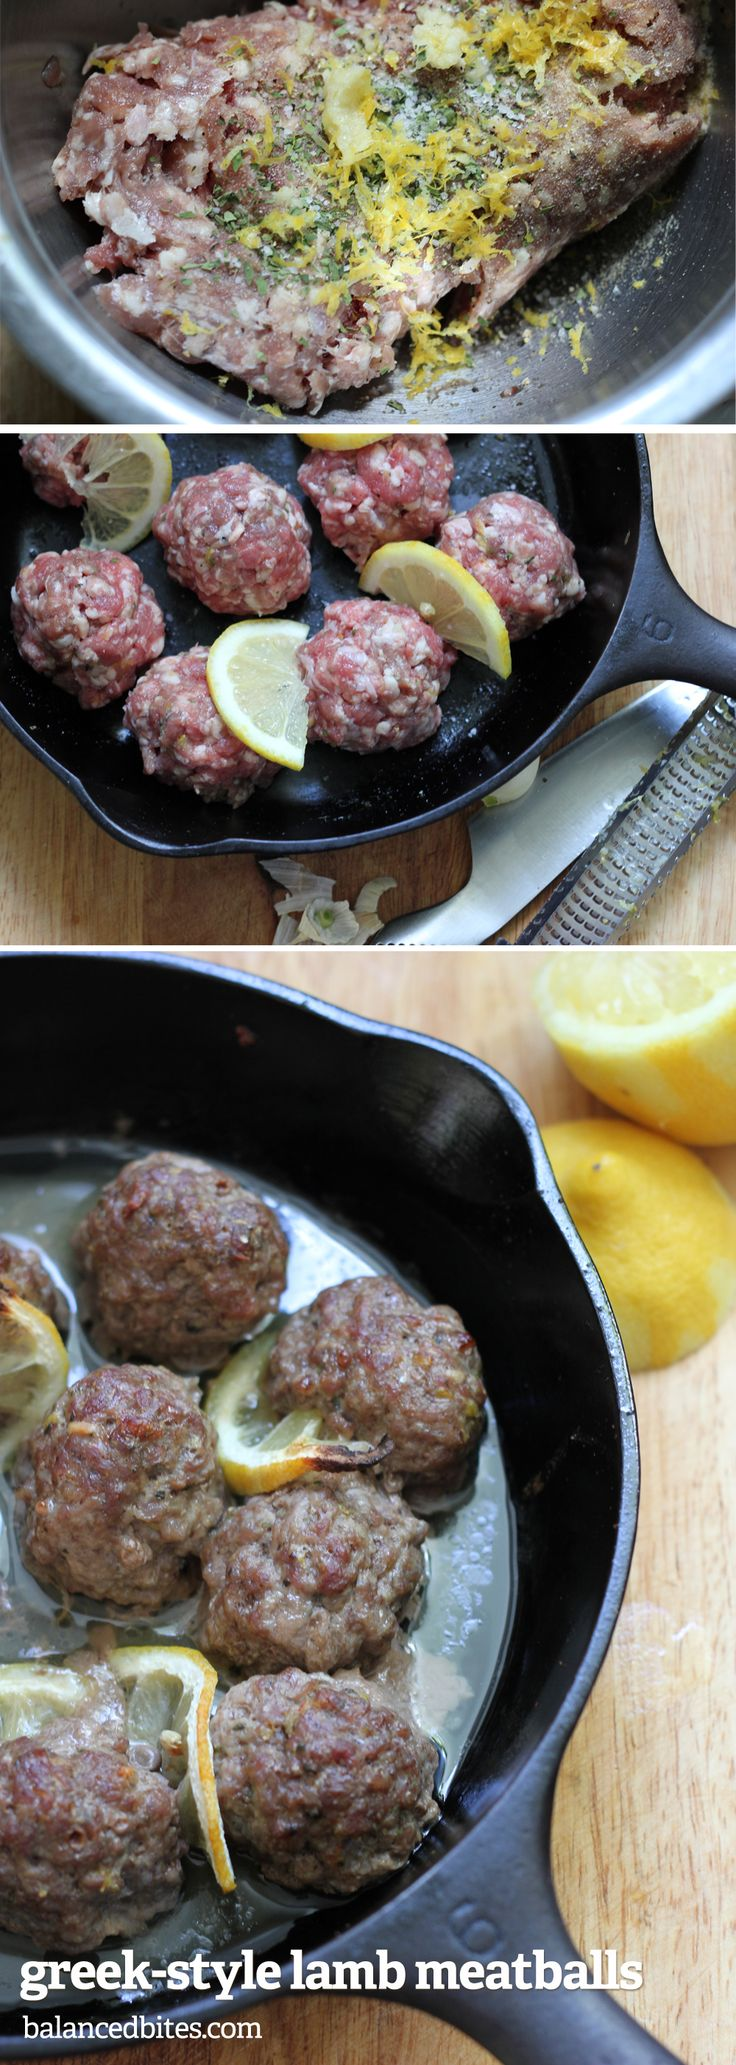 Greek-Style Lamb Meatballs | Balanced Bites      Easy and delicious meatballs the whole family will love!  #balancedbites #meatballs #lamb